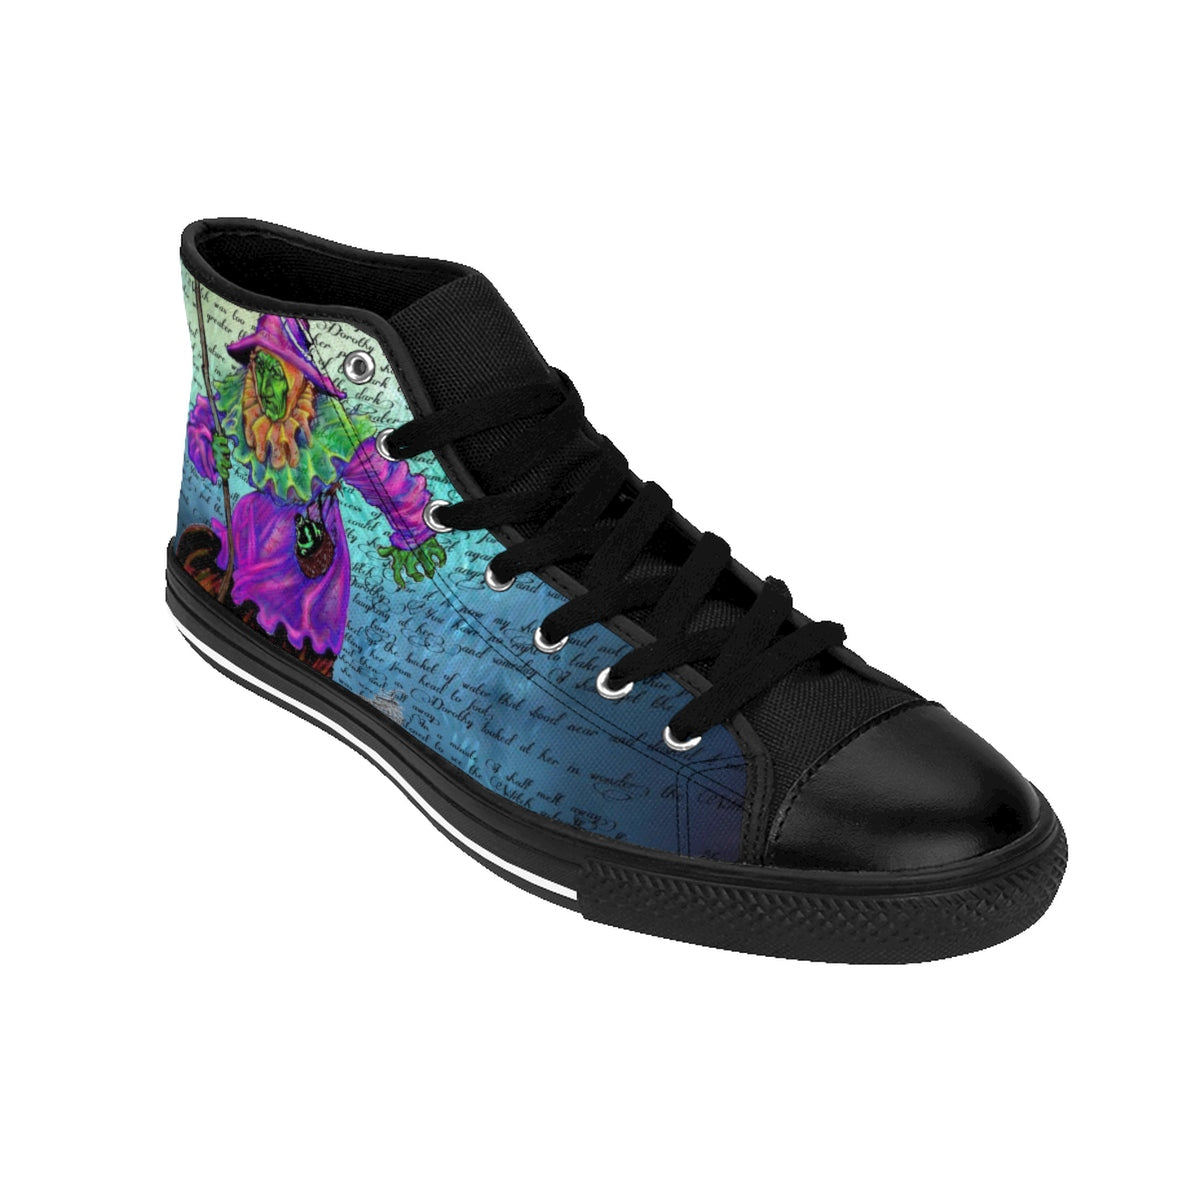 Wicked Witch Women's Sneakers-Starry Meadows